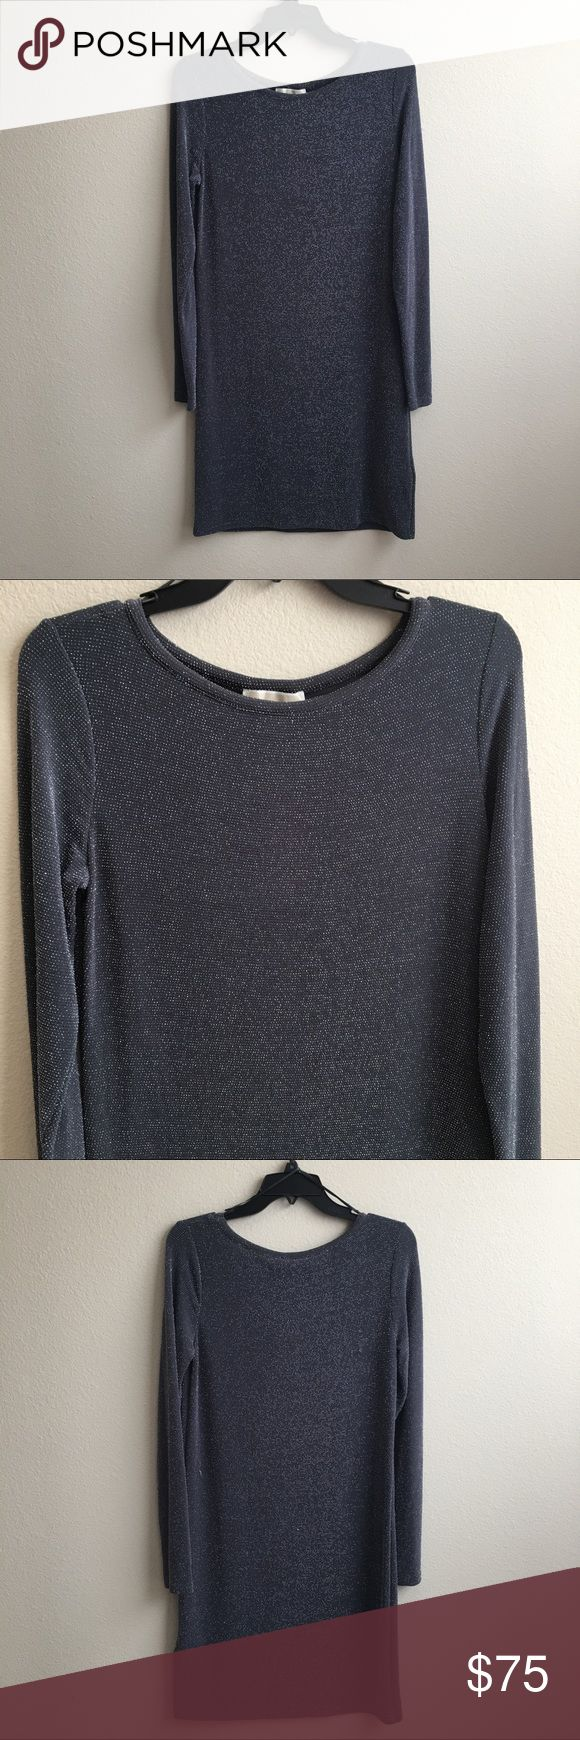 """Michael Kors Gray Long Sleeve Dress NWT Michael Kors dark gray dress. Has long sleeves, a scoop neck and metallic detail throughout. Made of a nylon stretchy material. L 35 1/2 x W 18"""" approximately. Michael Kors Dresses Long Sleeve"""